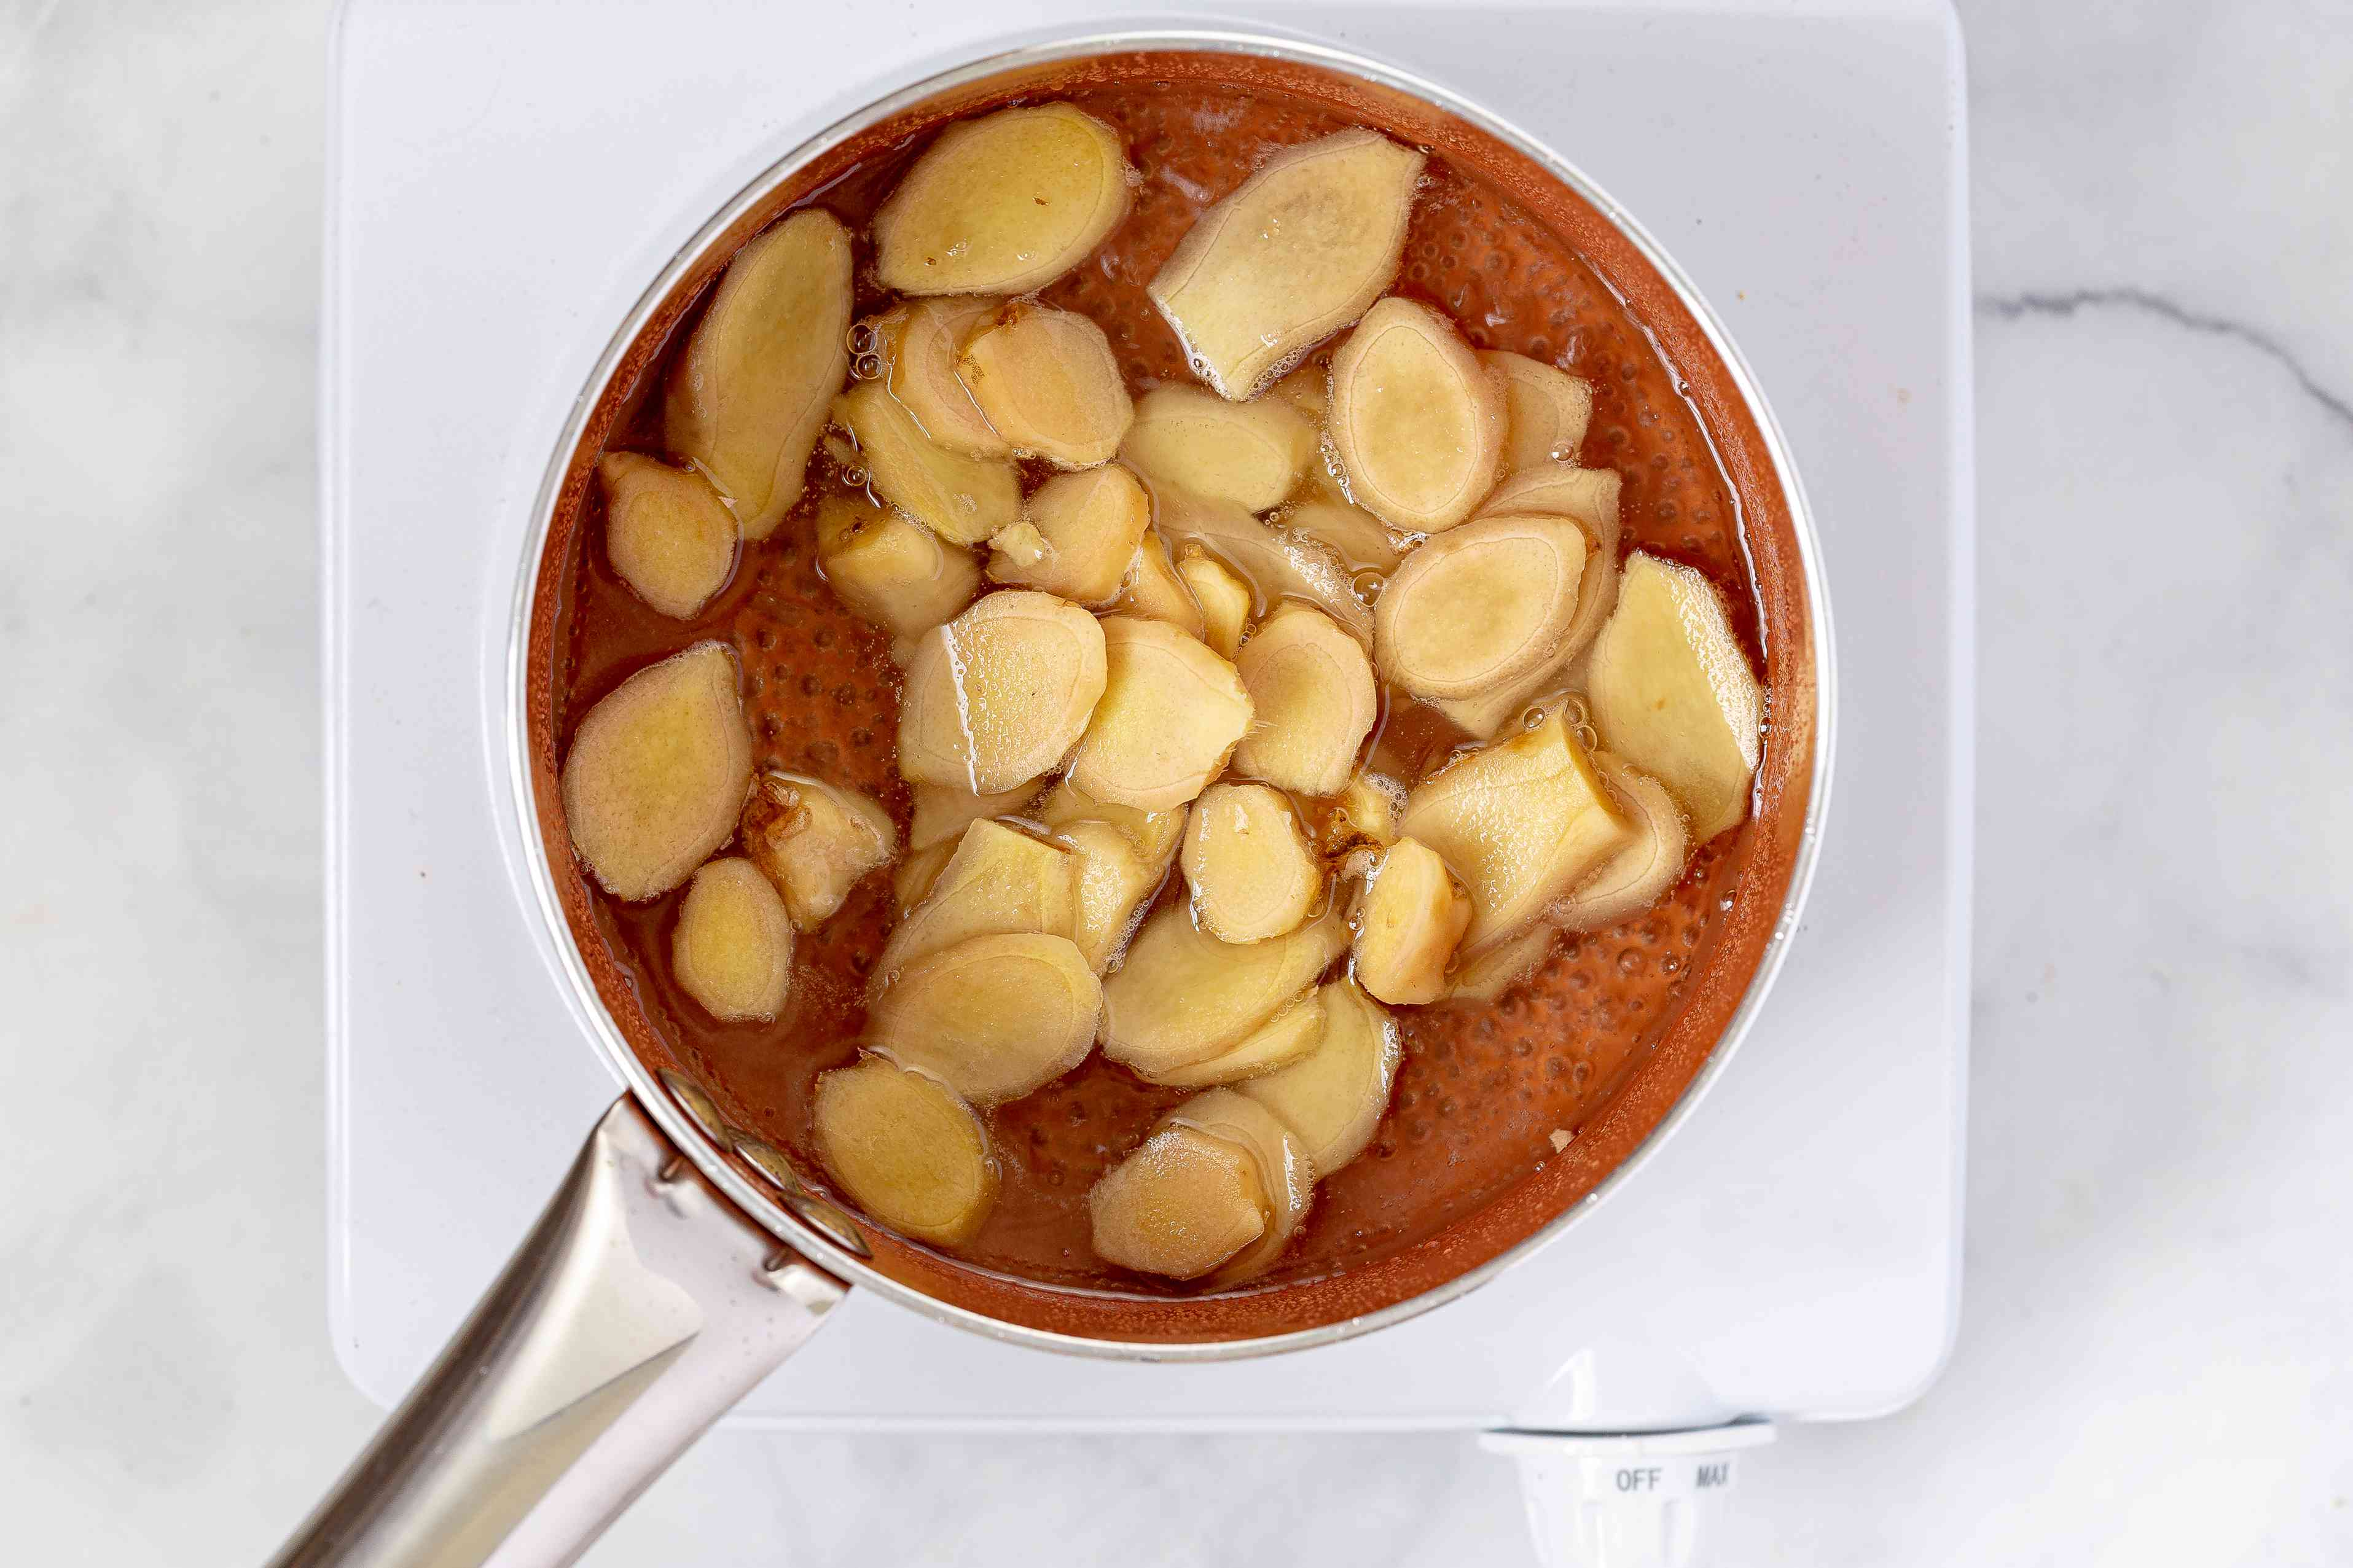 Slices of ginger simmering in simple syrup in a saucepan